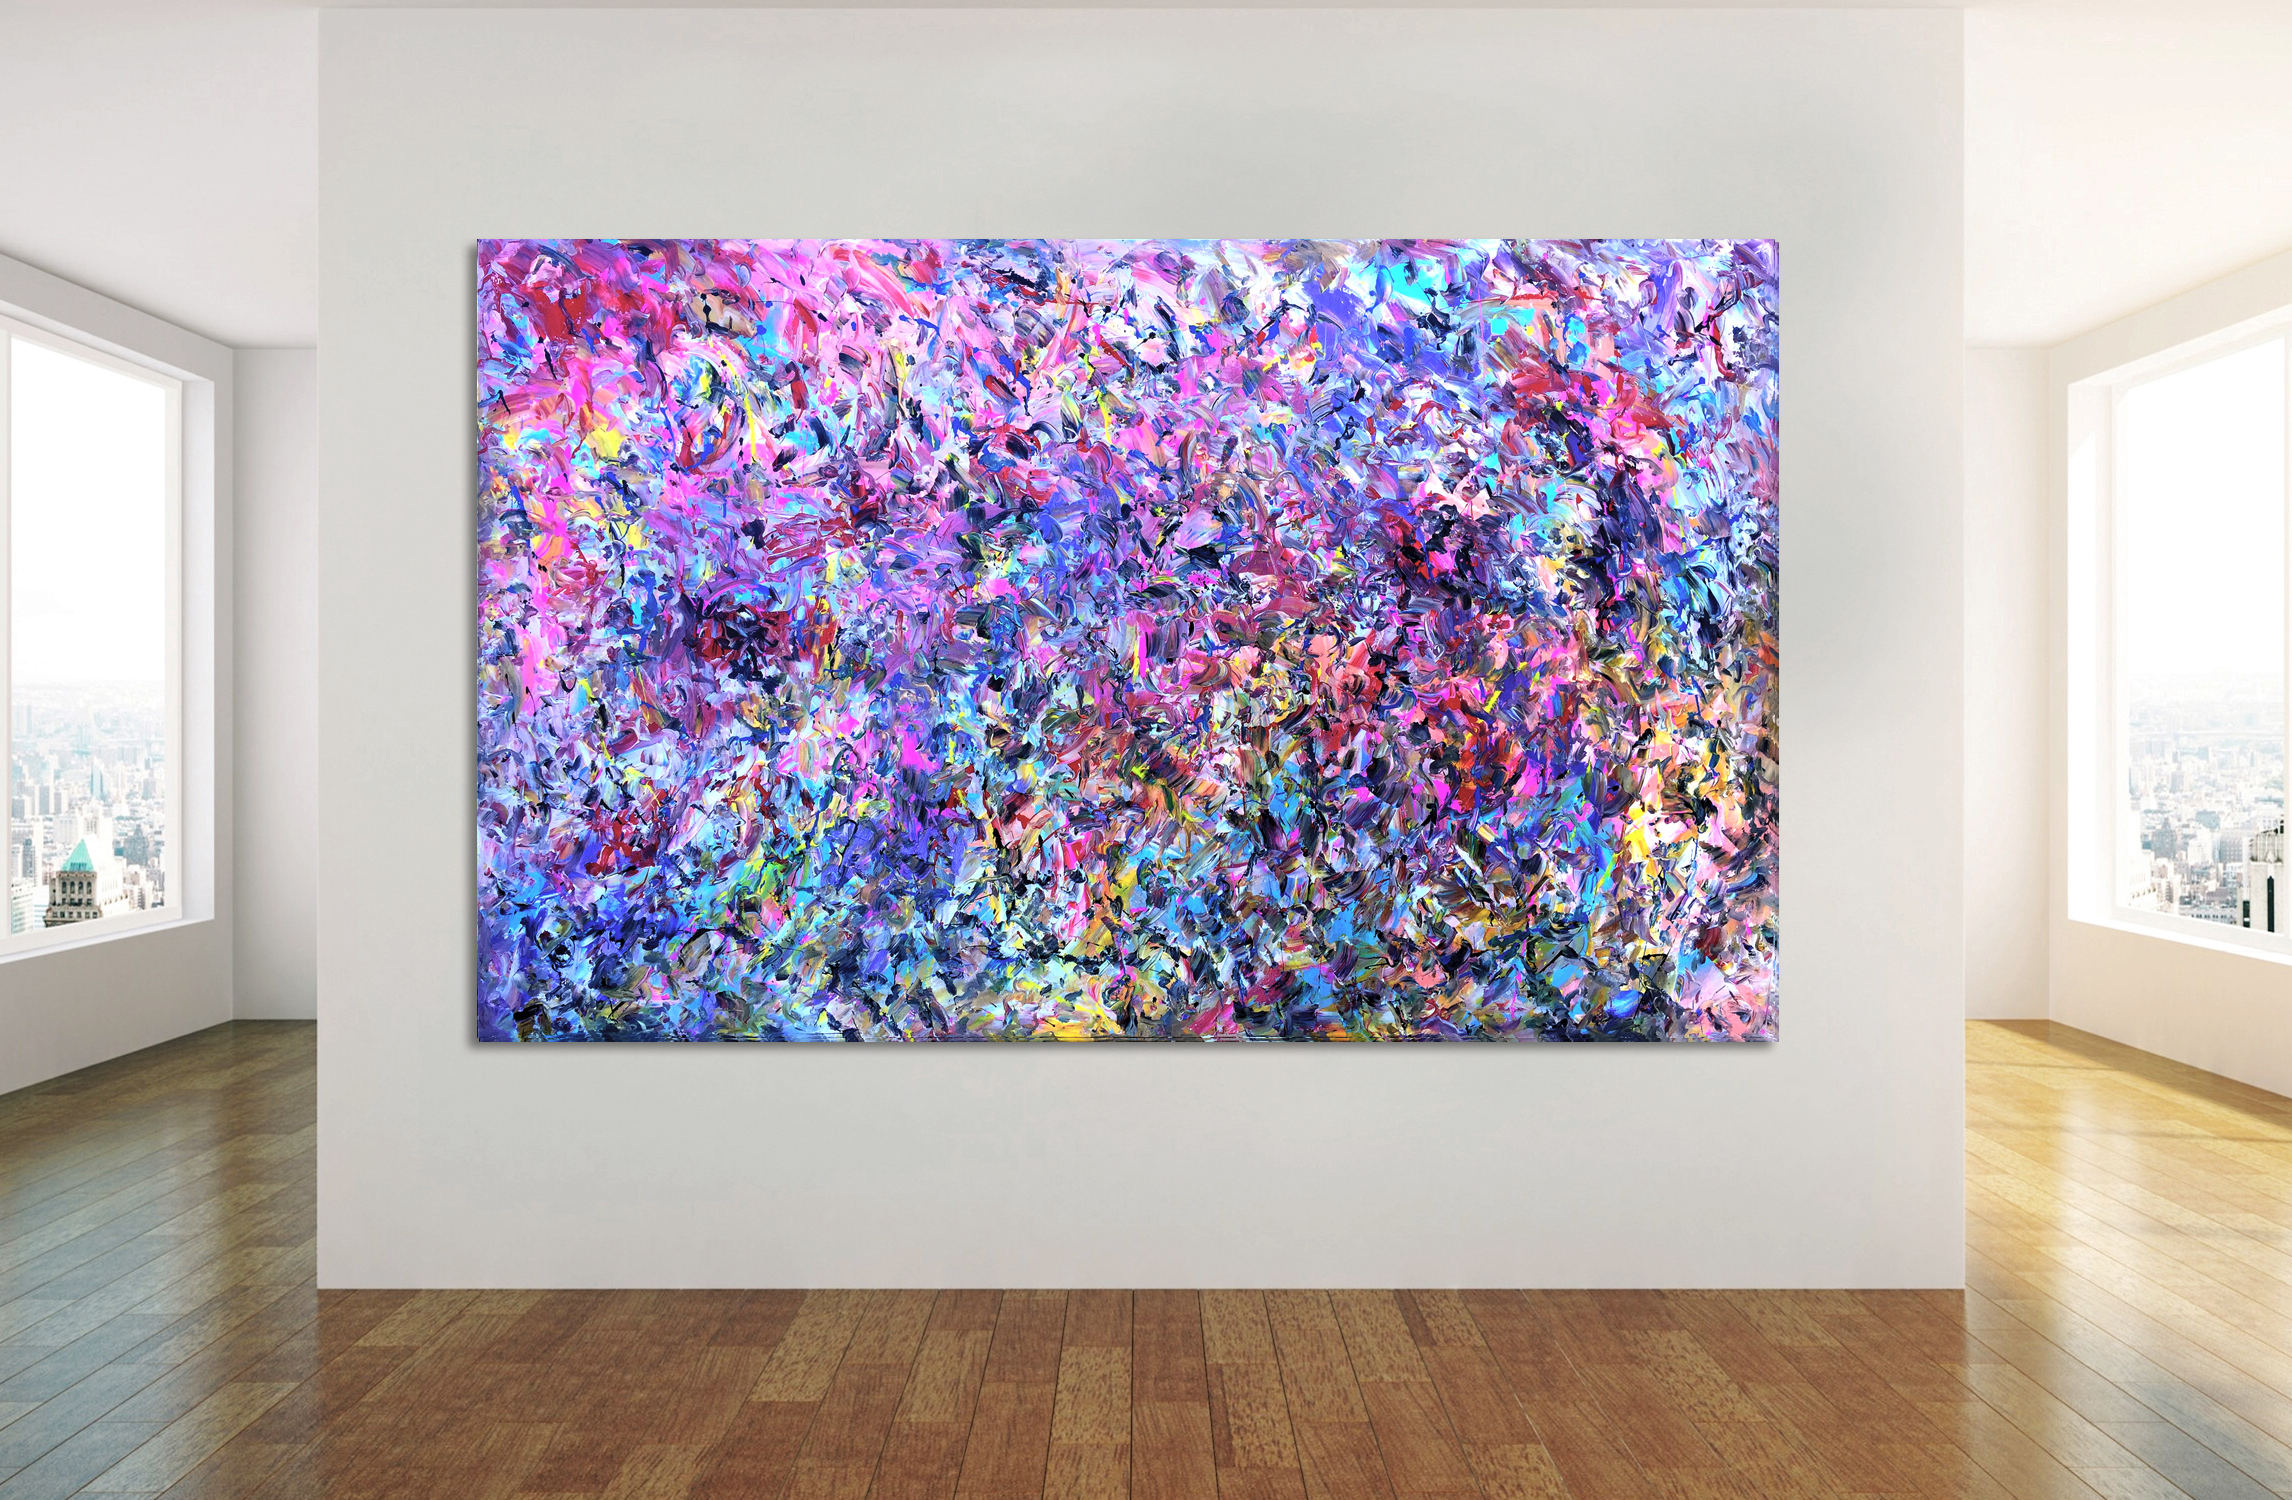 Number 76 - Abstract Expressionism by Estelle Asmodelle